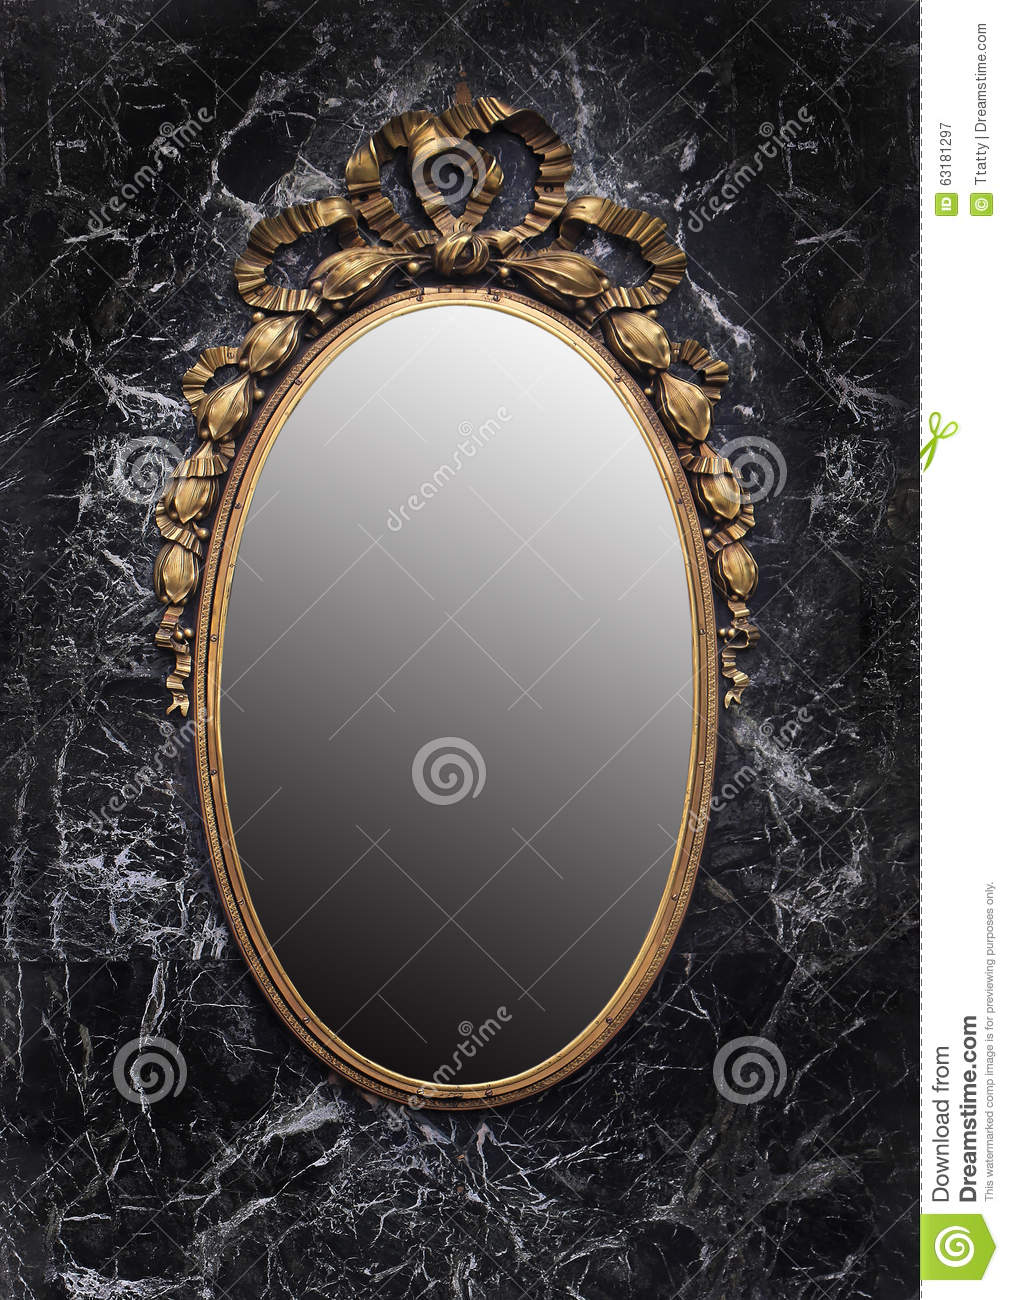 Miroir enchant photo stock image 63181297 for Miroir noir download